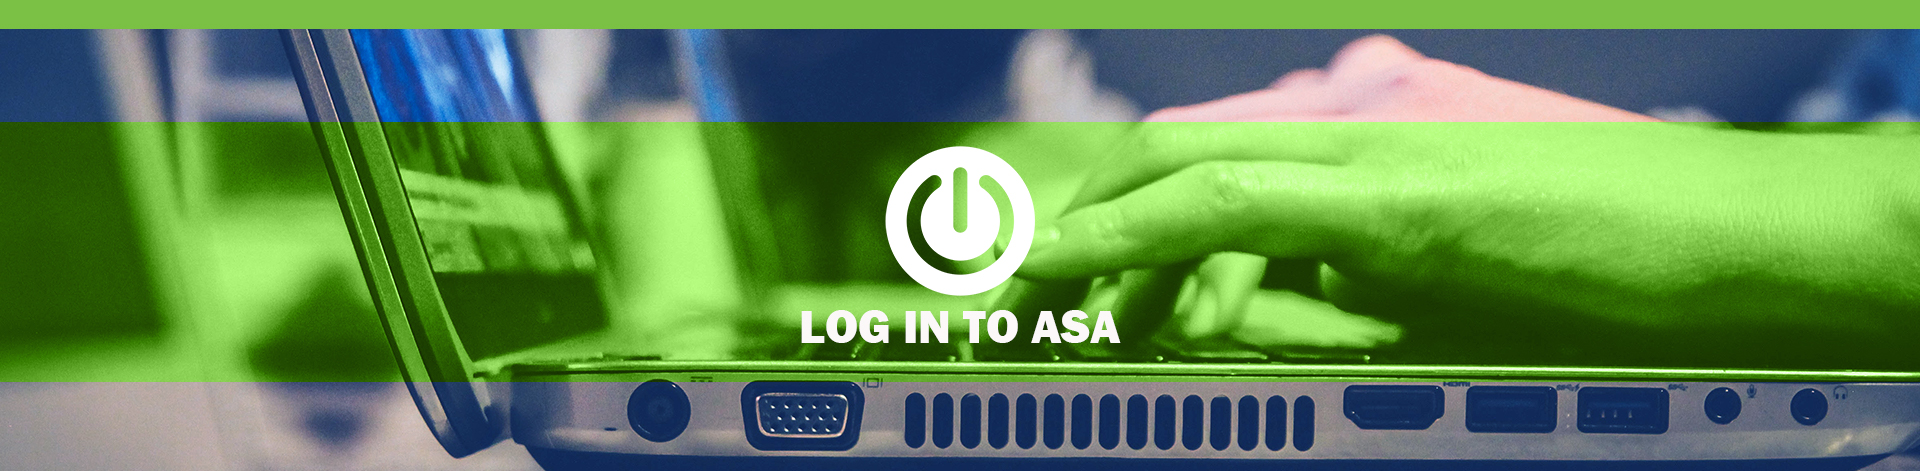 log in to asa